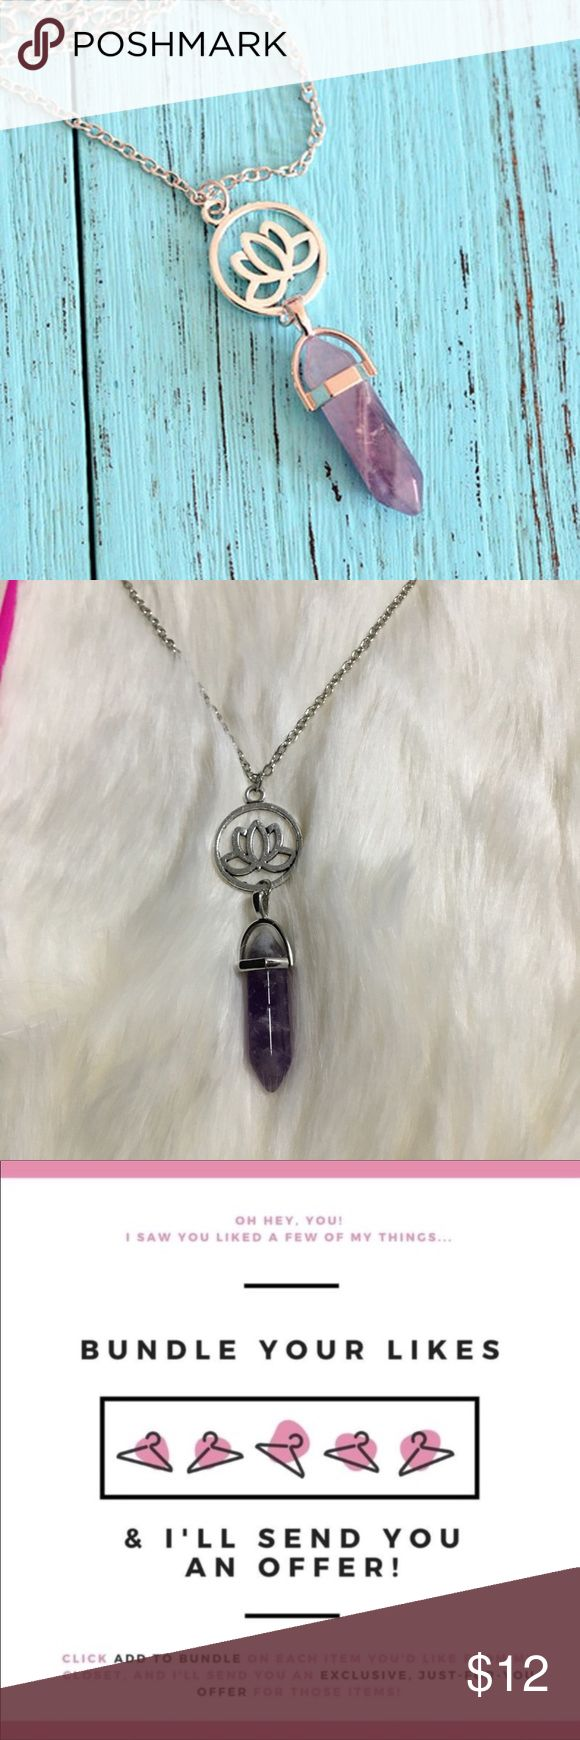 "💥Price Is FIRM💥 ""Lotus Stone"" Boho Necklace Looks more like 2nd picture the necklace. Save more when you bundle just ""add to bundle"" and I'll send u a private offer. COLOR: silver   Brand new ✅ ✨Boutique Item✨ Not accepting OFFERS on INDIVIDUAL ITEMS ❌ No trades ❌ No drama zone❌ No holds❌   💥🔅Prices are FIRM🔅💥    If u have any questions plz ask before purchase is made Free People Jewelry Necklaces"